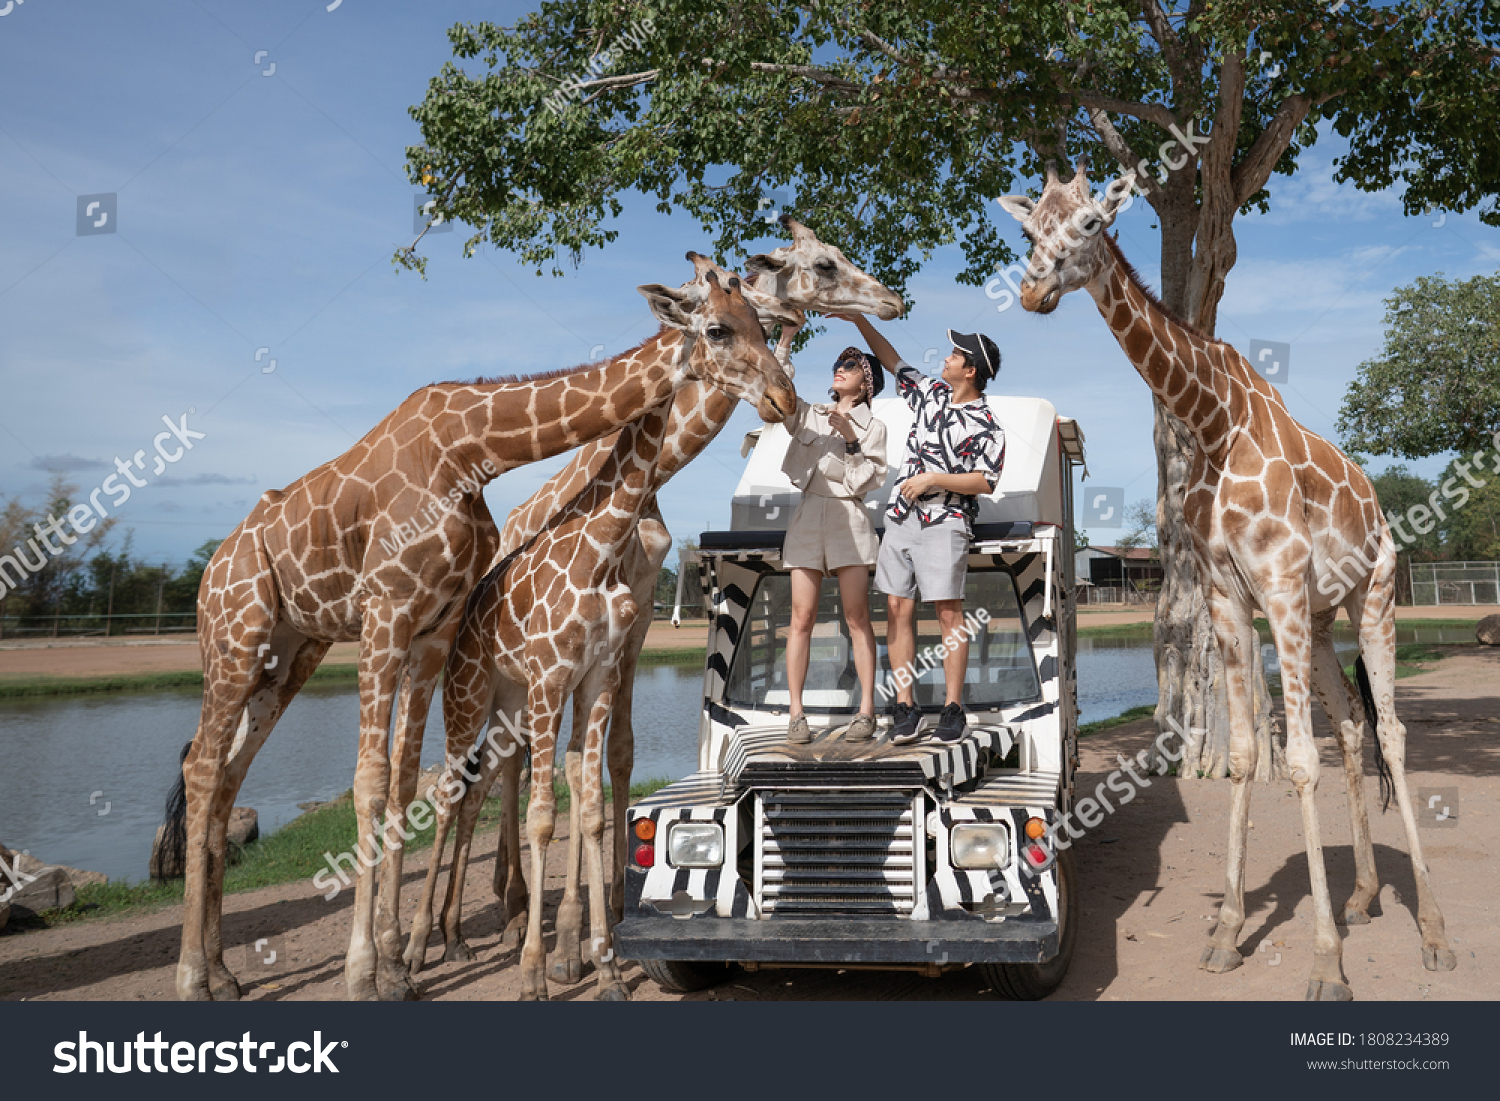 Couple taking a bus tour, feeding and playing with giraffe on safari open park zoo. #1808234389